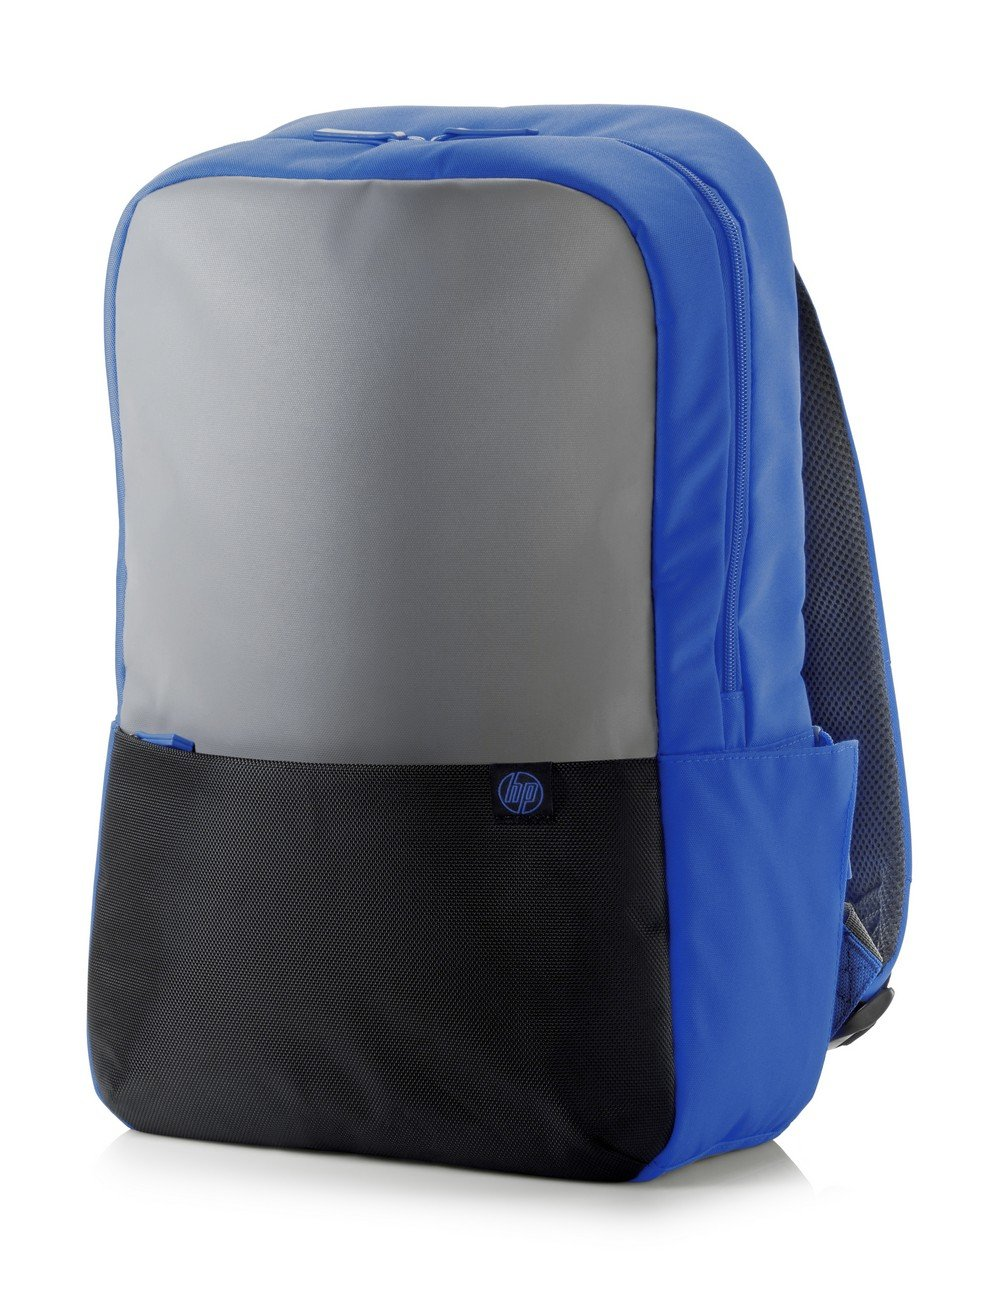 HP Duotone Y4T22AA#ACJ 15.6-inch Laptop Backpack (Blue)